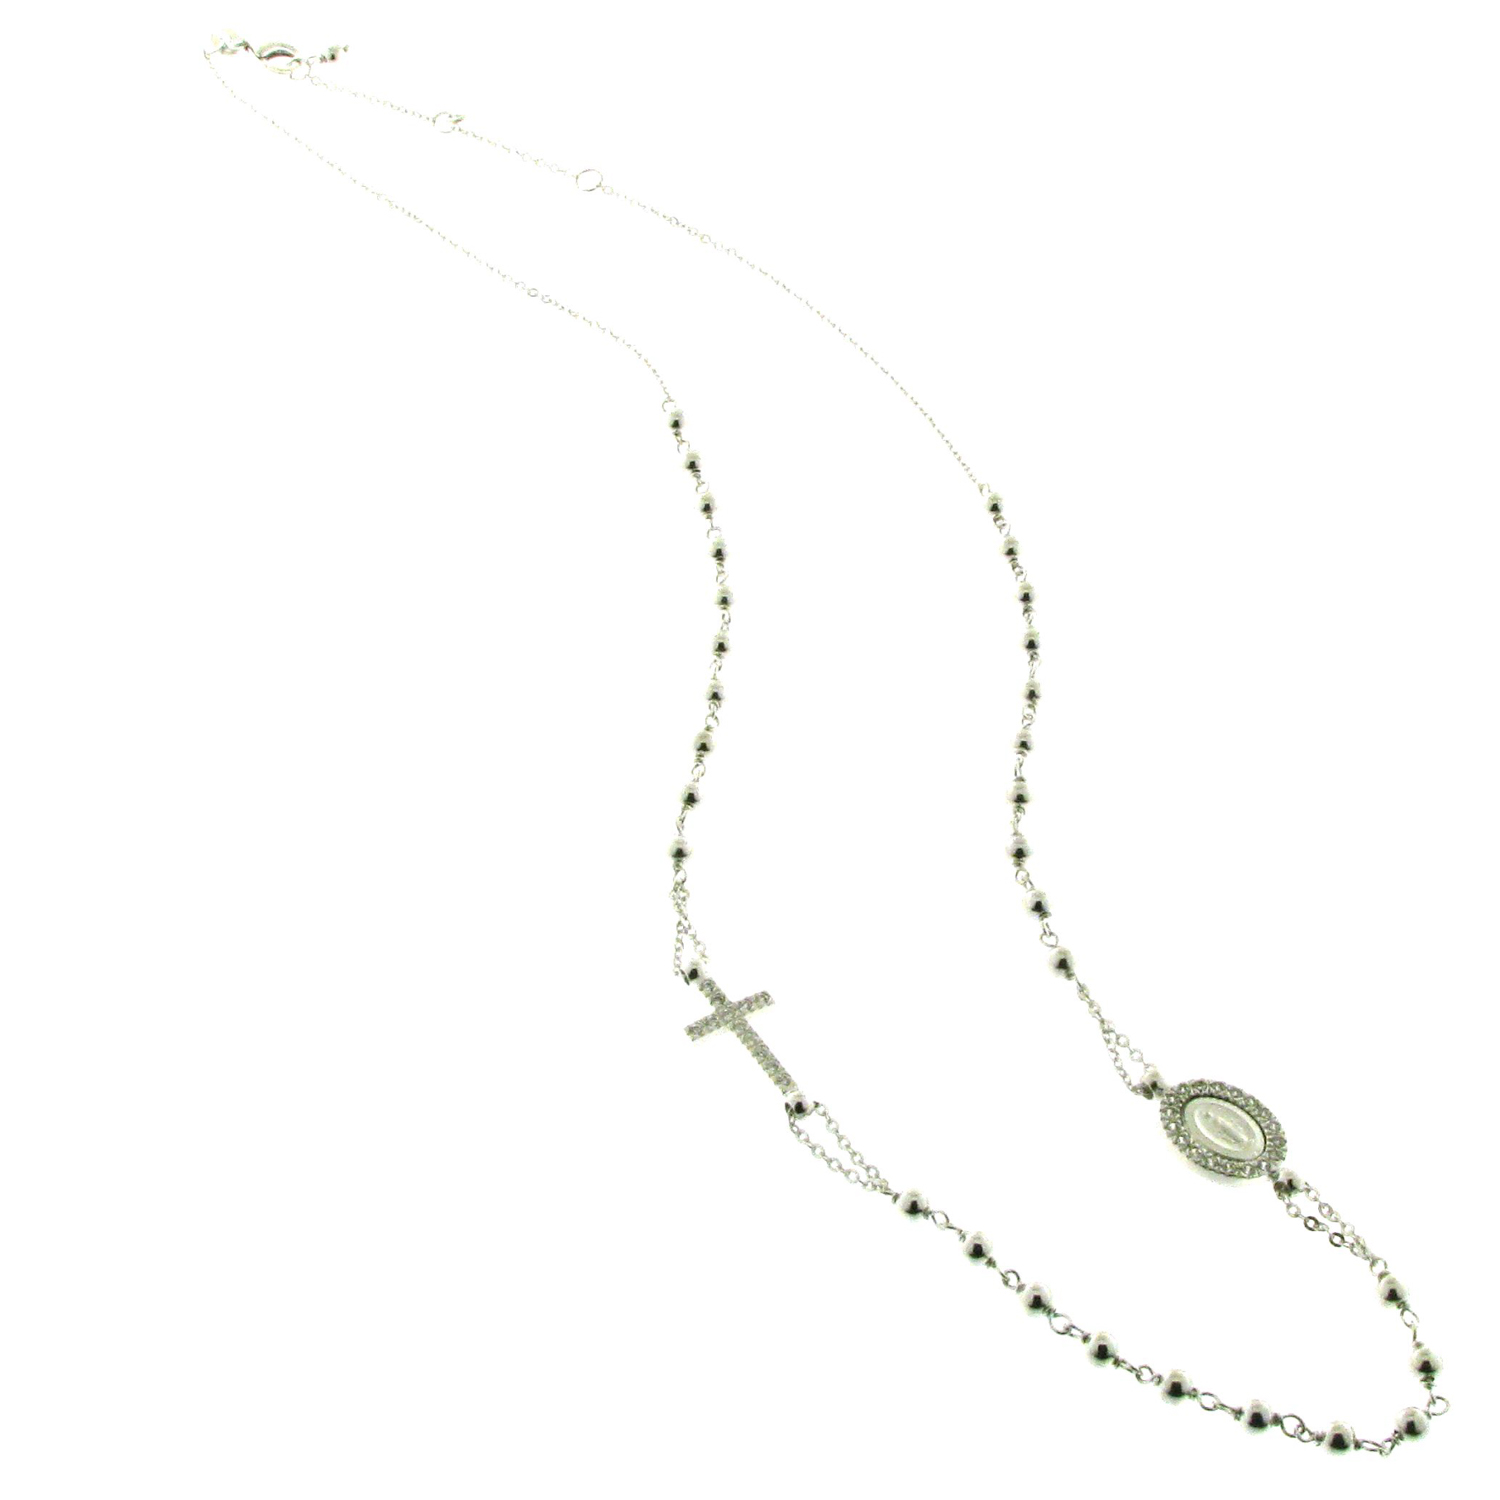 NECKLACE ID10011